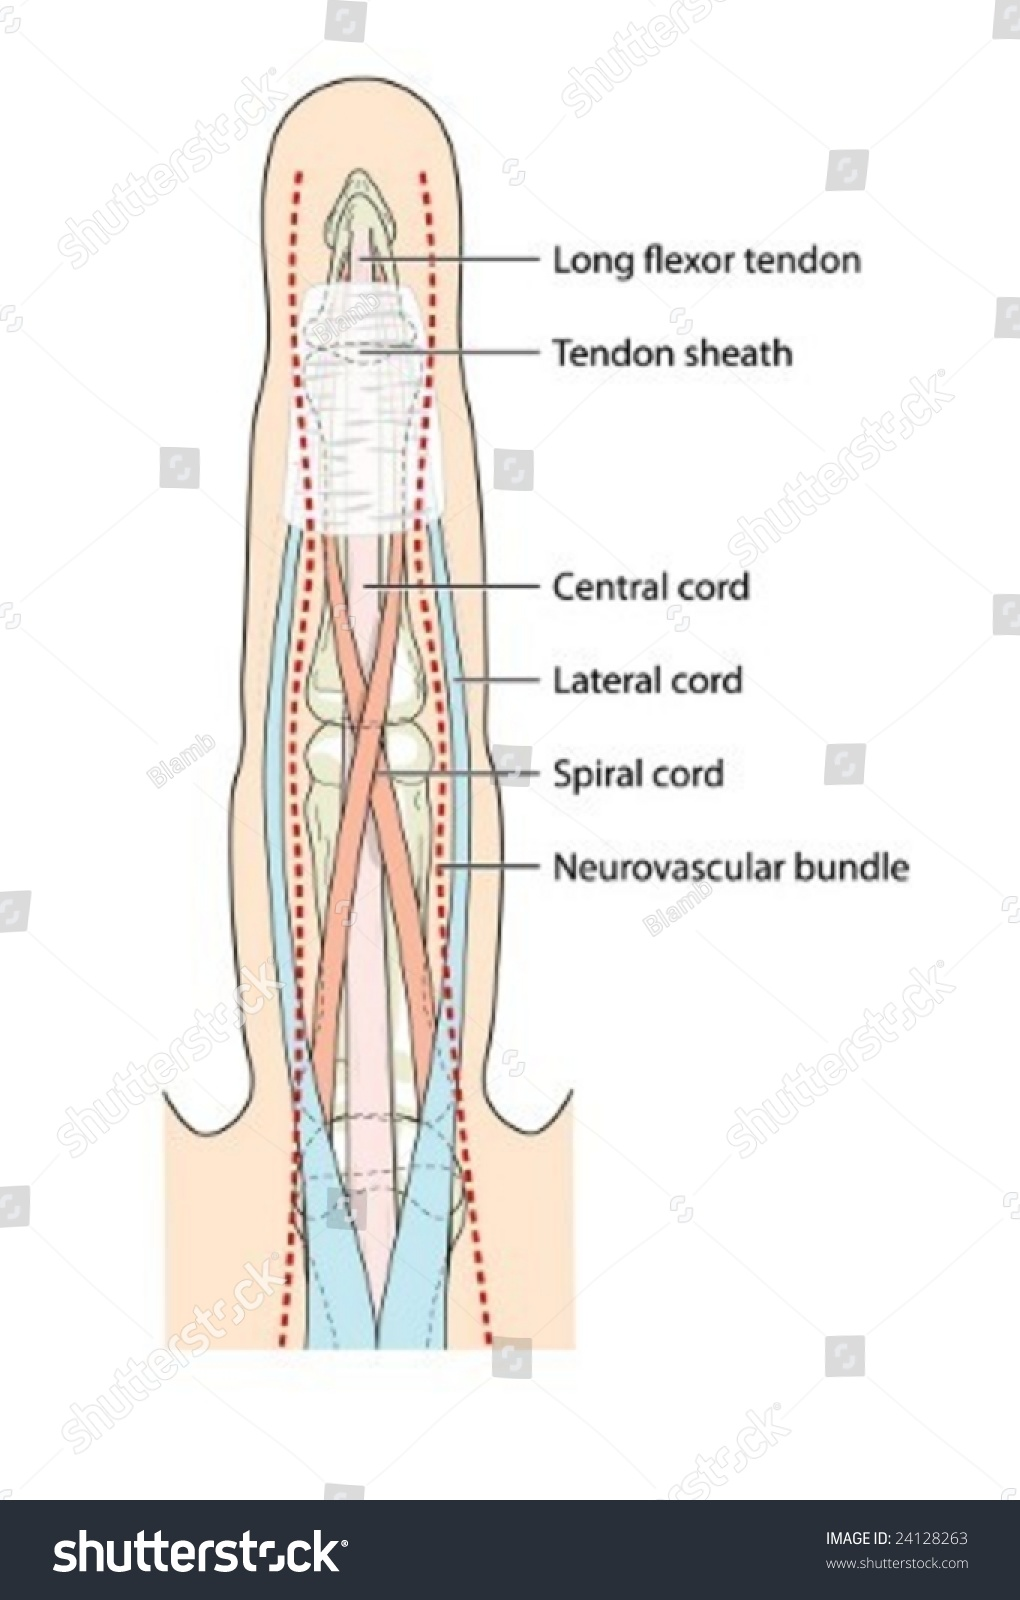 Anatomy Finger Tendons Labeled Stock Vector (Royalty Free) 24128263 ...